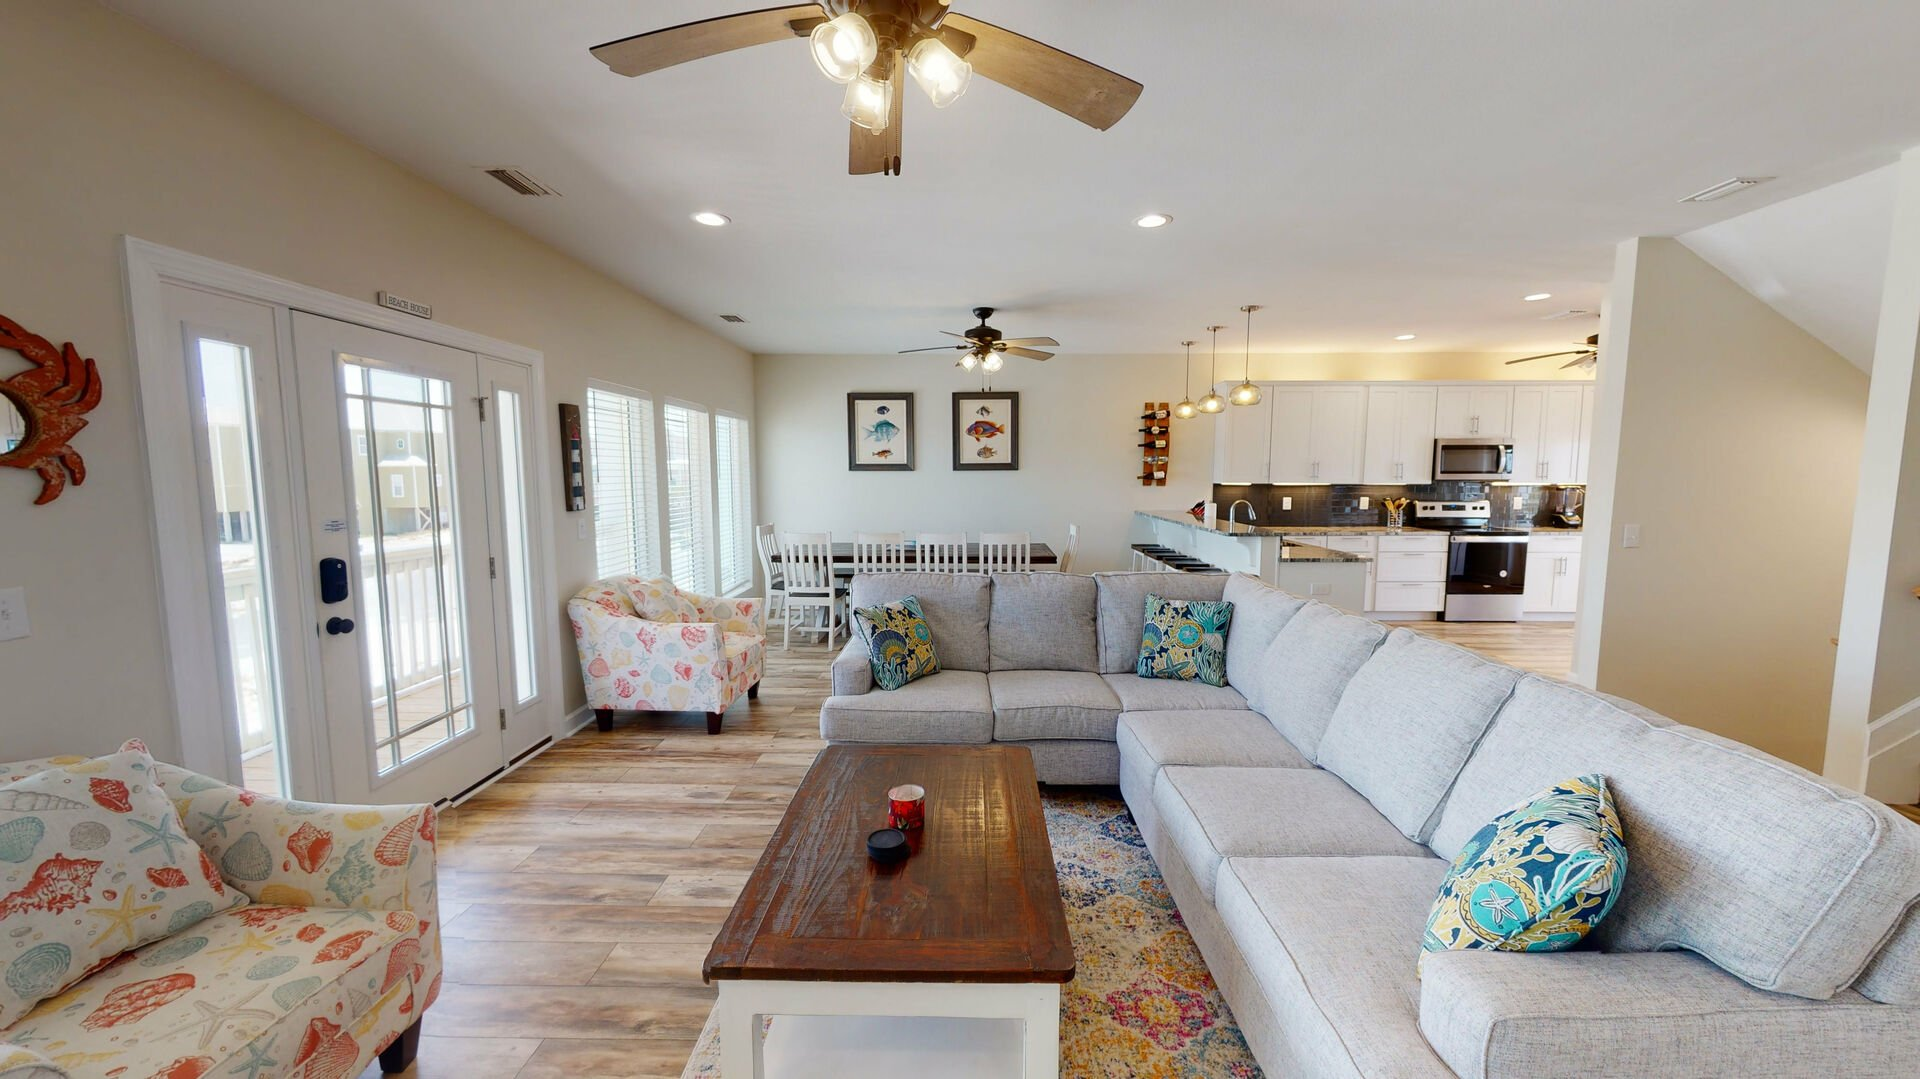 Spacious living area with ample amounts of seating